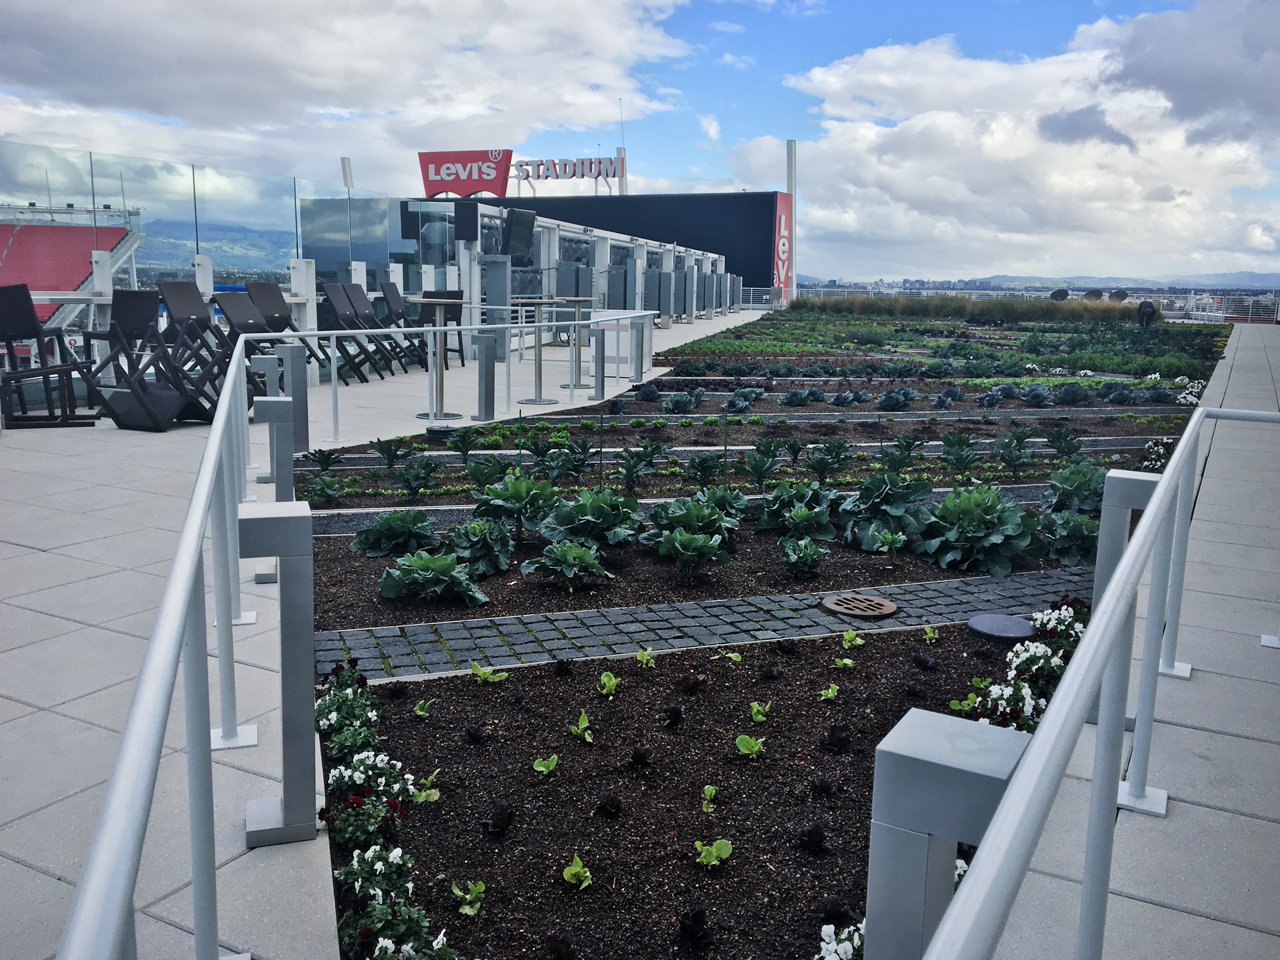 Levi's Stadium Greenroof & Rooftop Farm